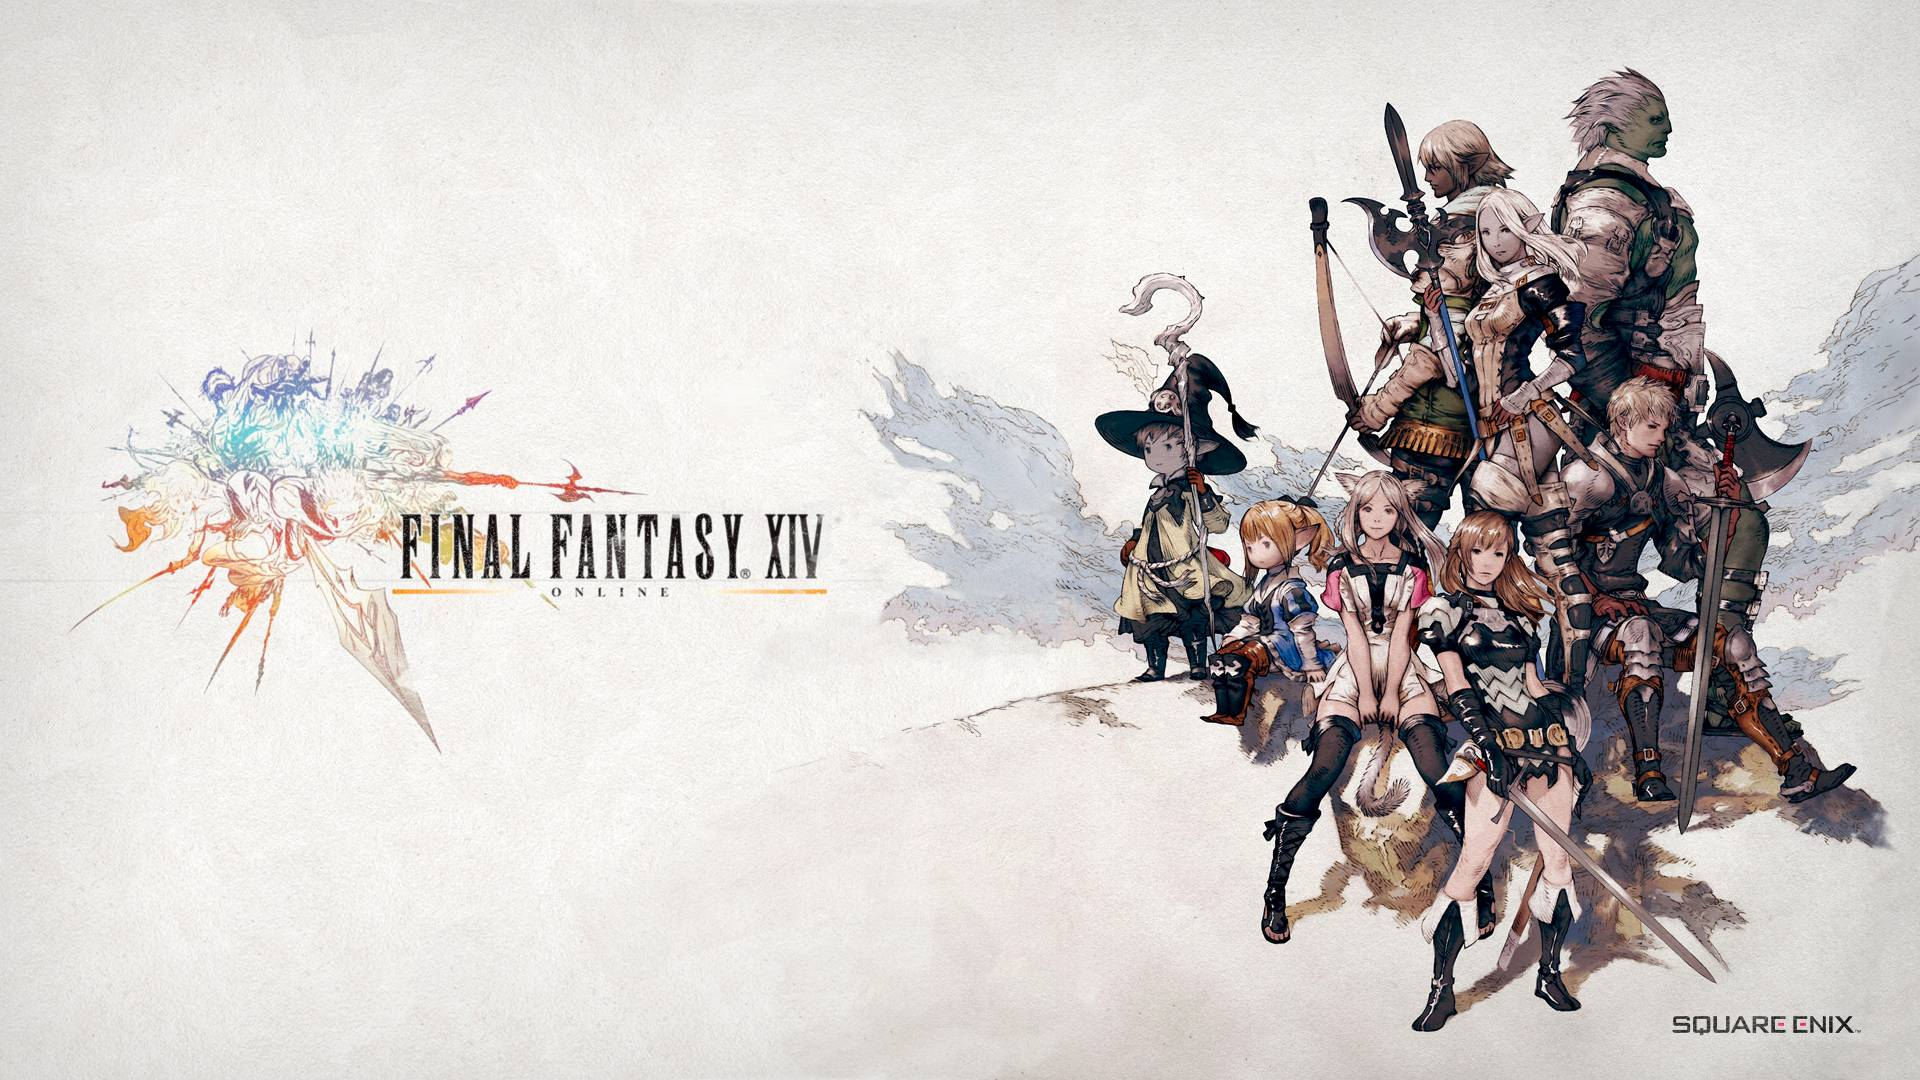 Final Fantasy Xiv Wallpapers Wallpaper Cave